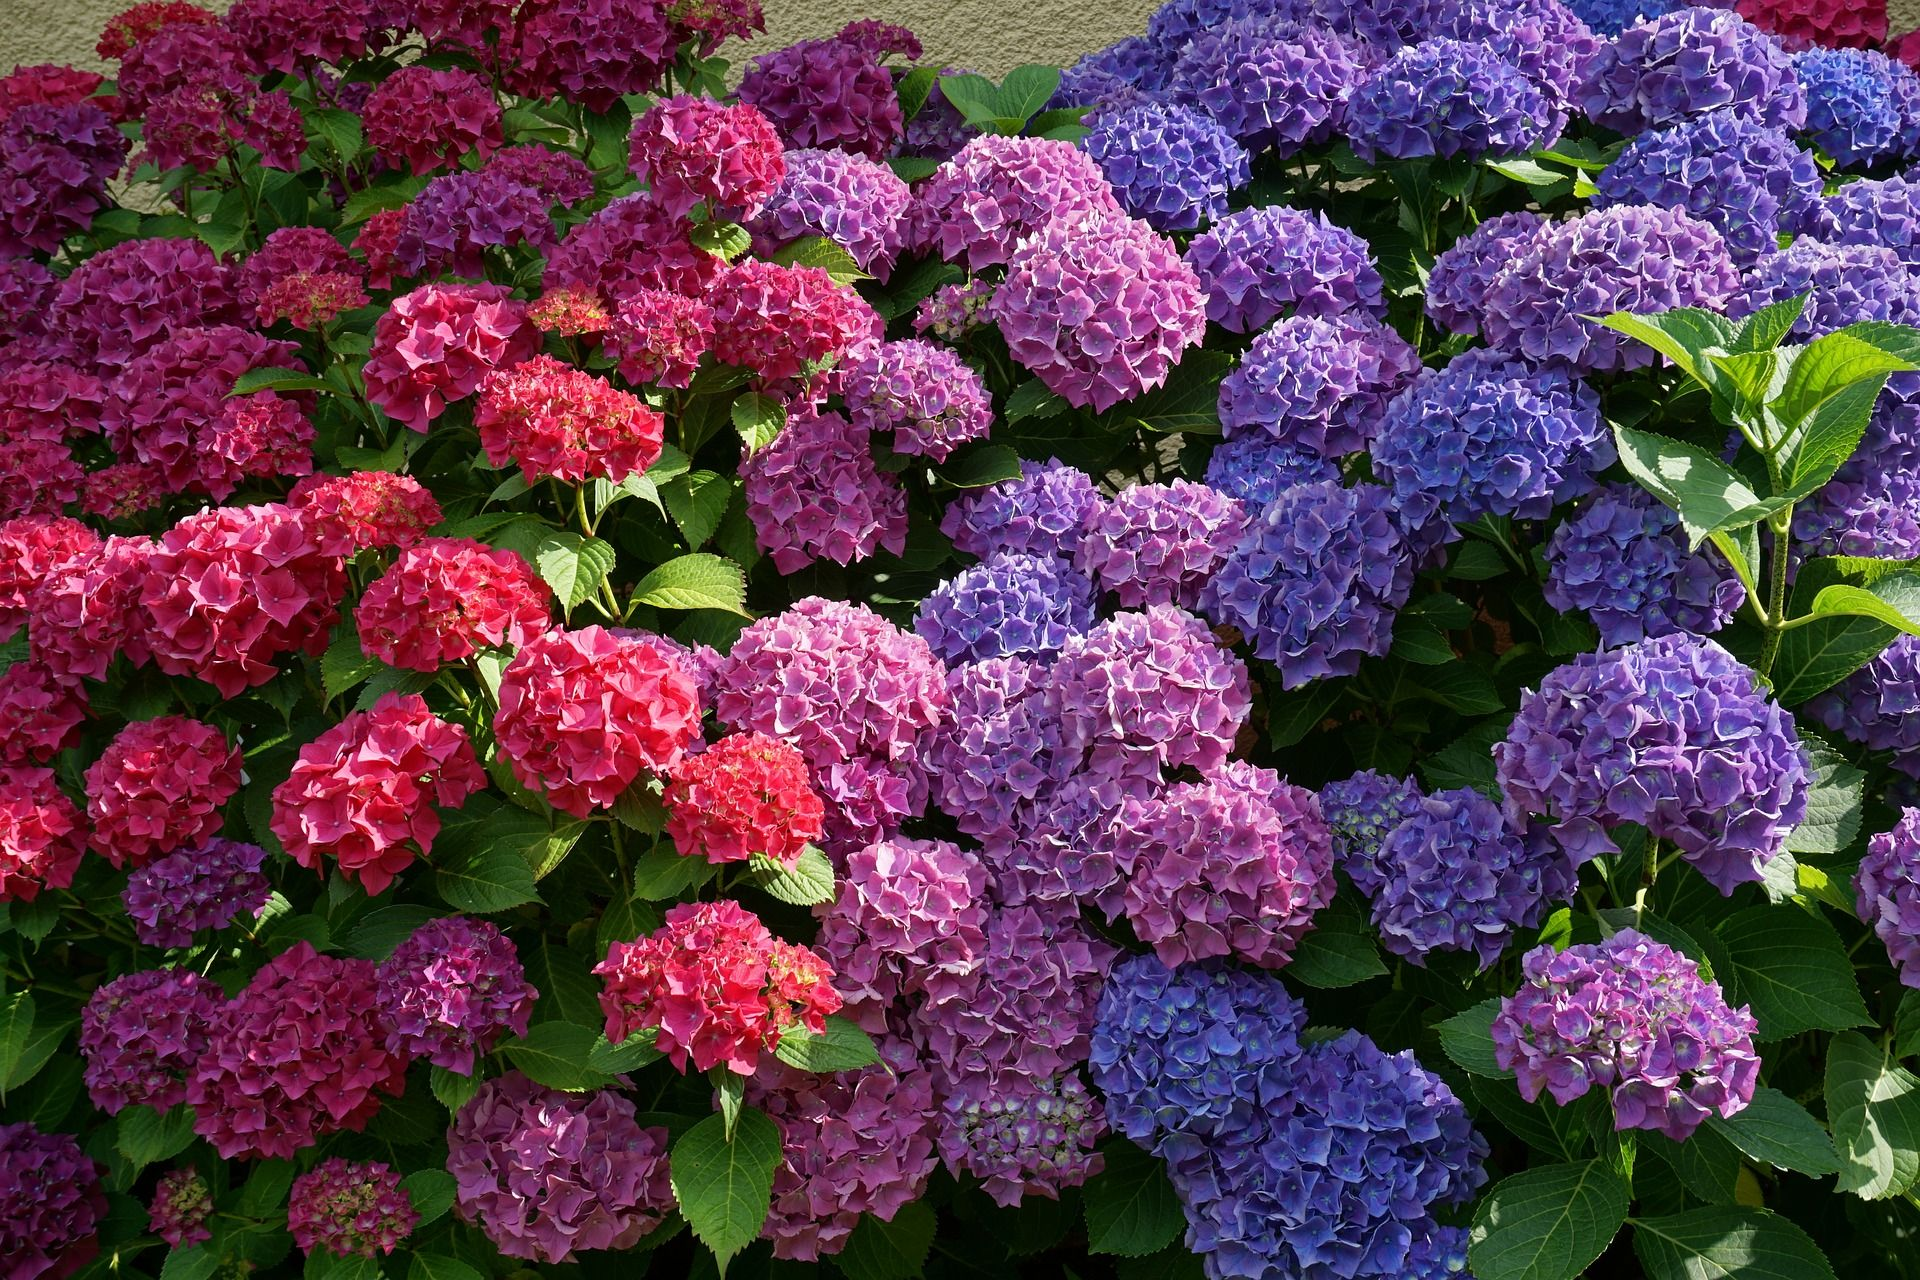 How To Change The Color Of Hydrangeas Growing Hydrangeas Planting Hydrangeas Hydrangea Colors